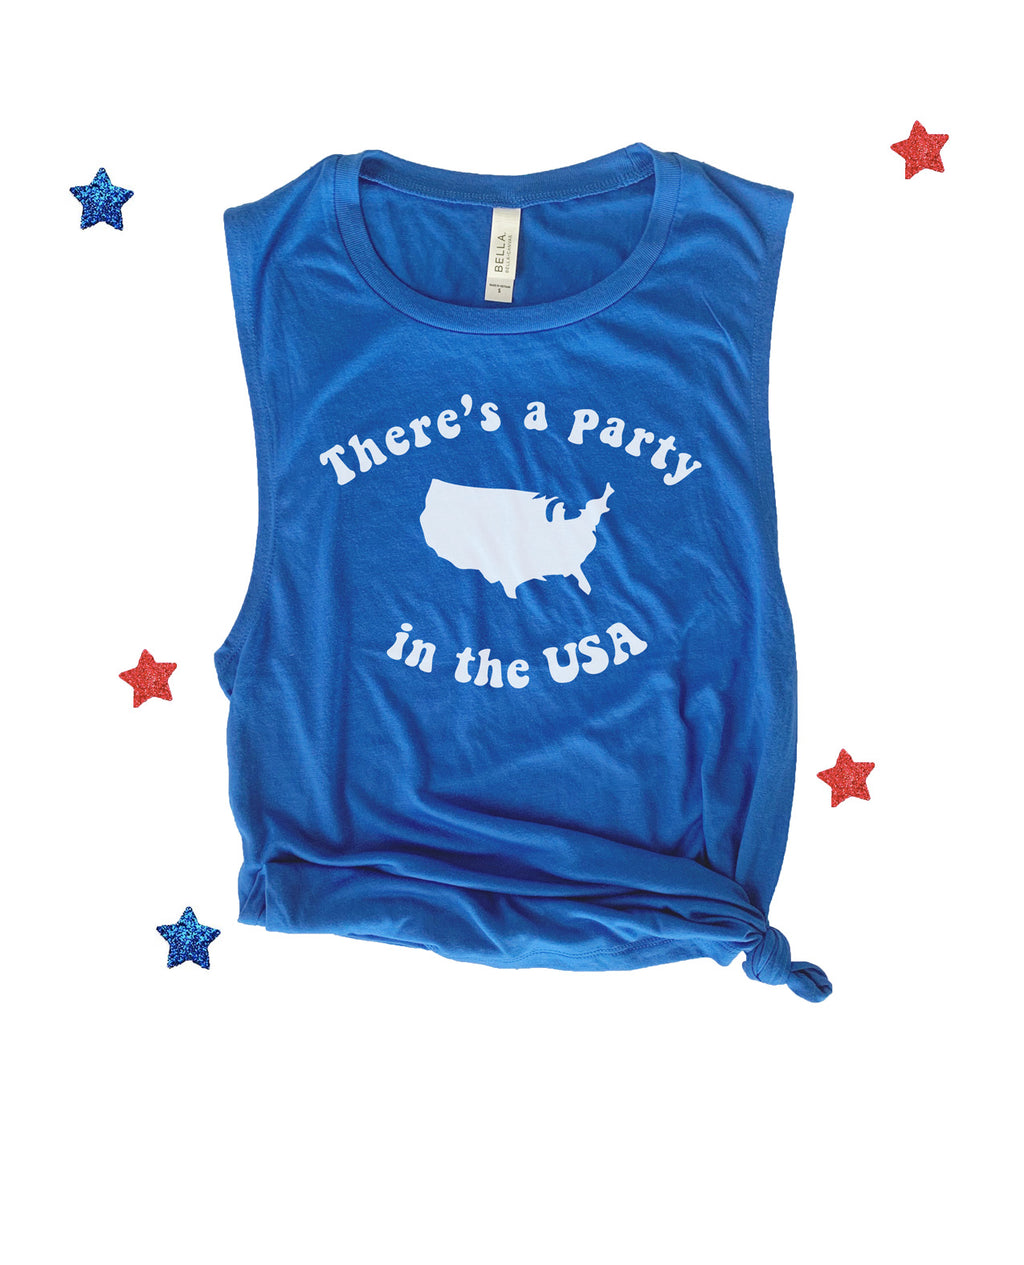 Our super cute 4th of July tee is the perfect patriotic shirt for all your 4th of July festivities! Support your love for America with this cute 4th of July shirt!